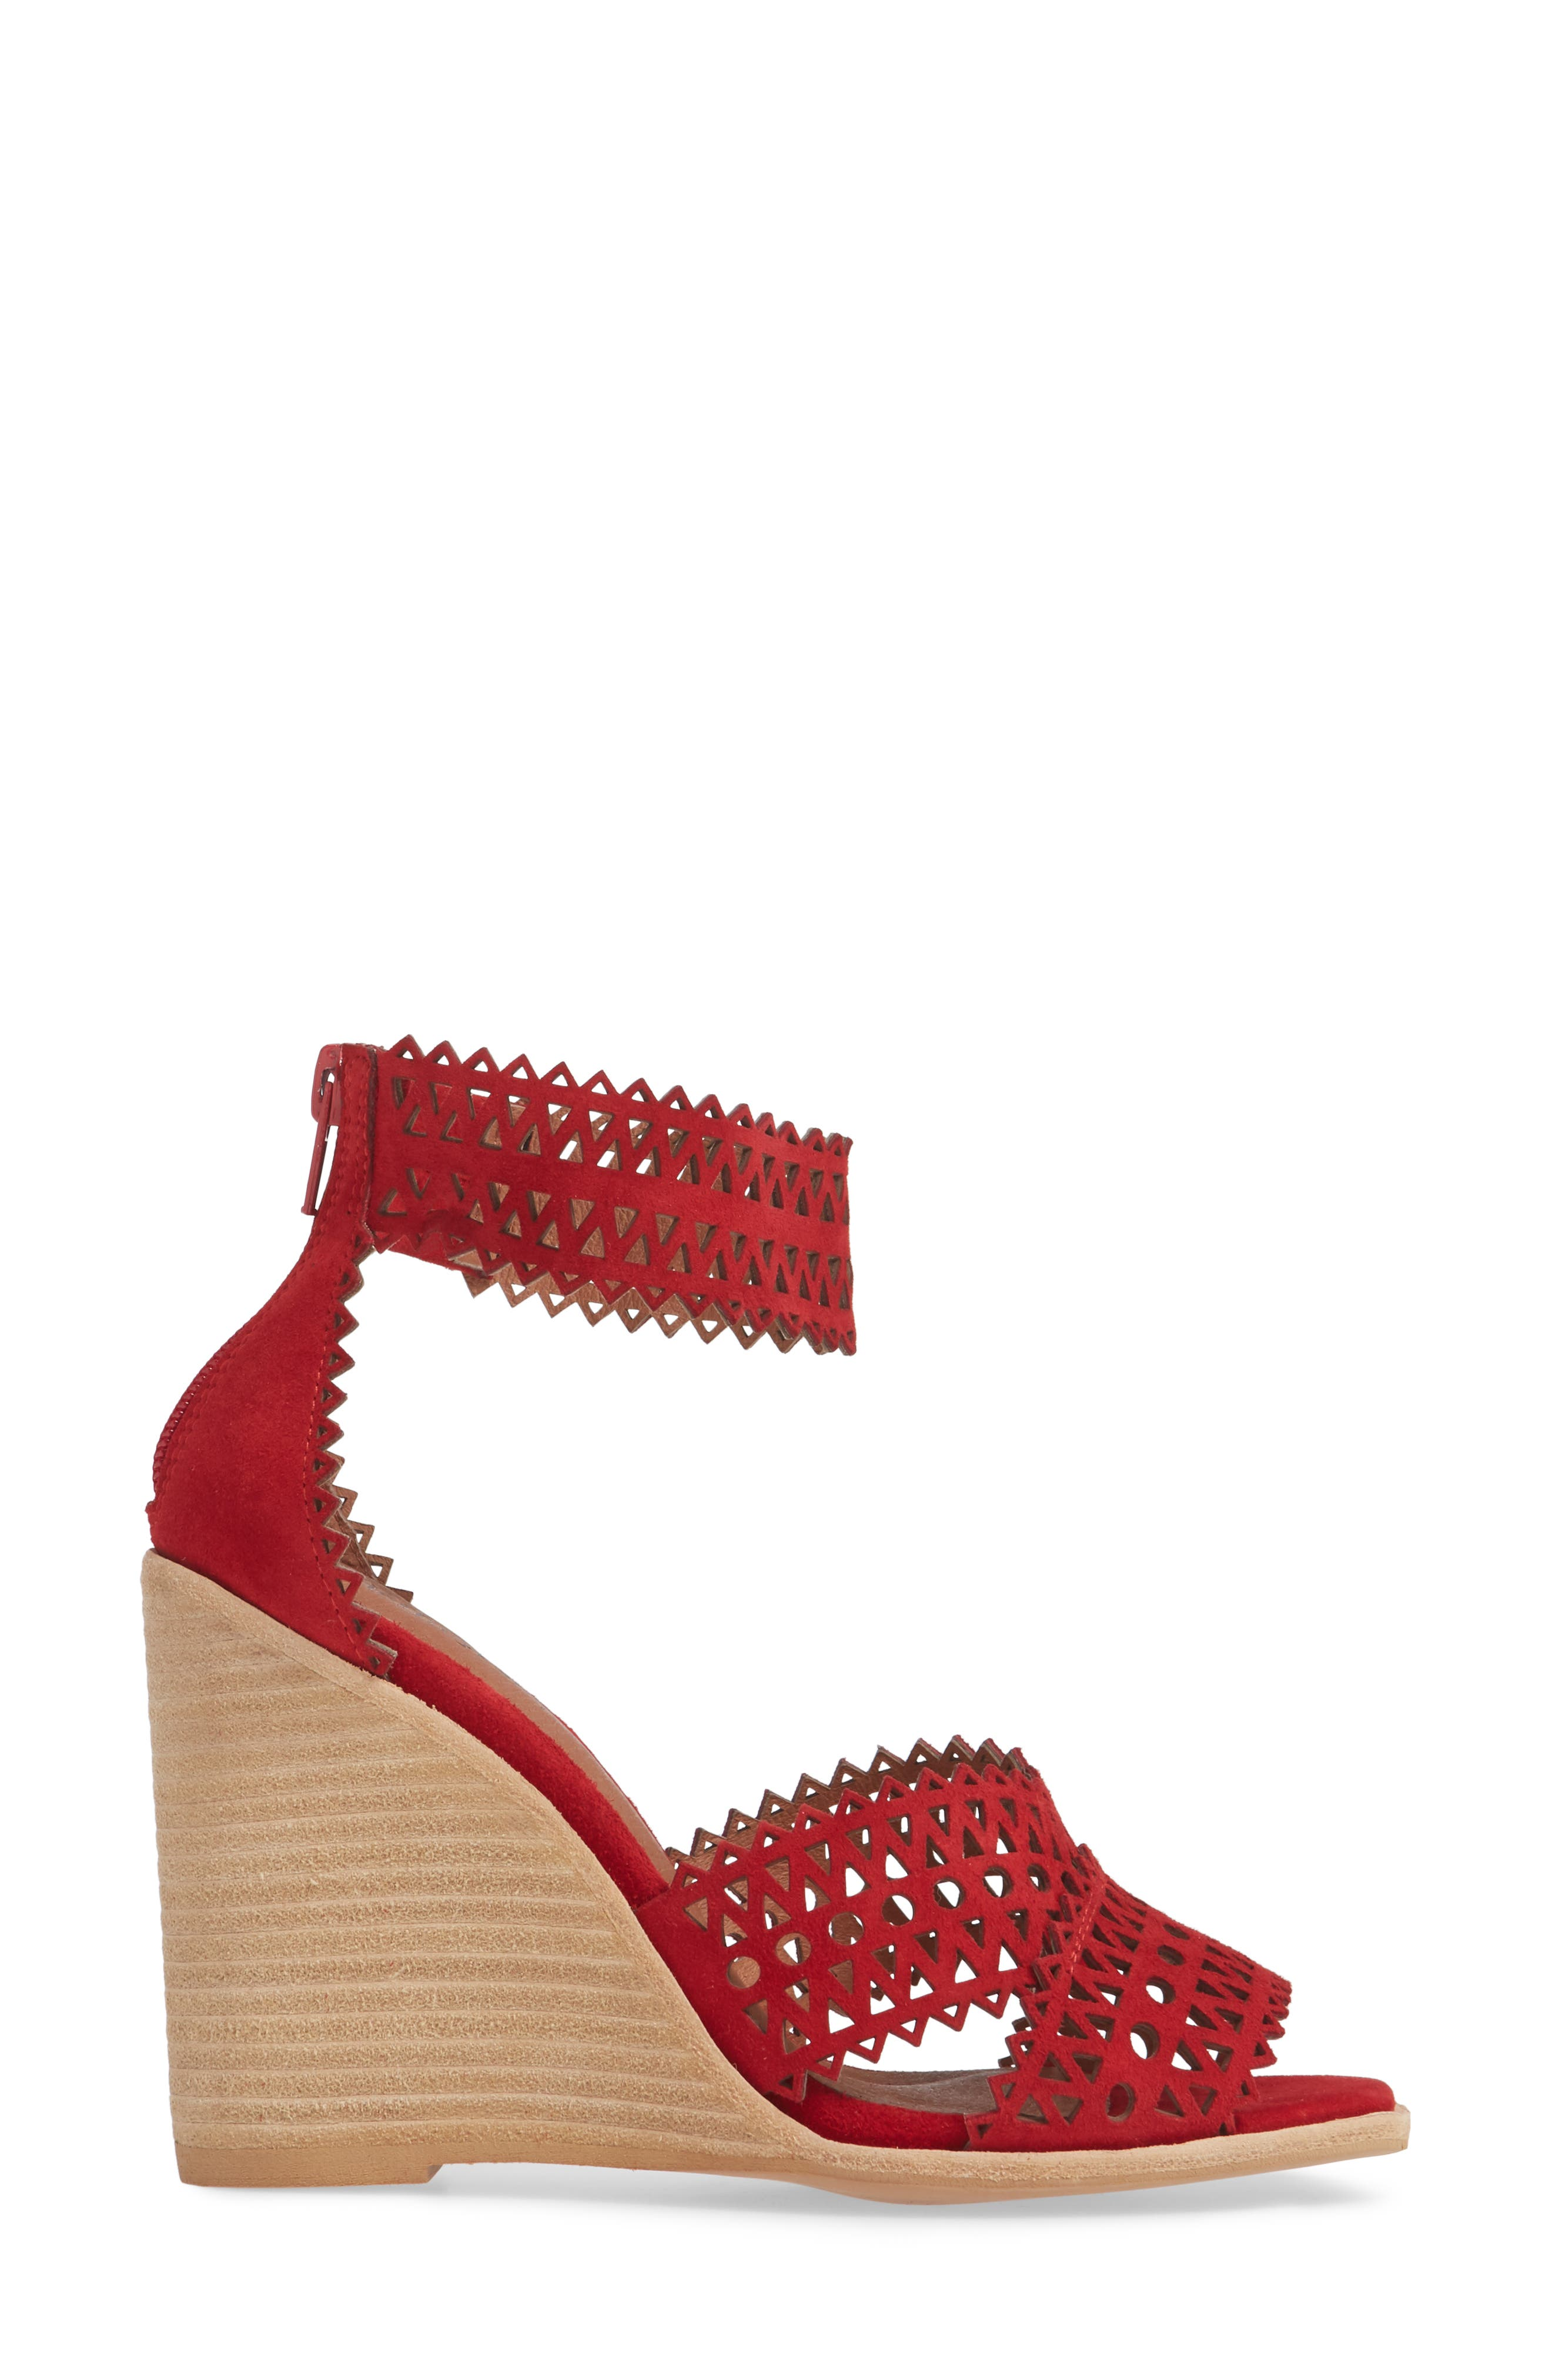 Besante Perforated Wedge Sandal,                             Alternate thumbnail 3, color,                             600